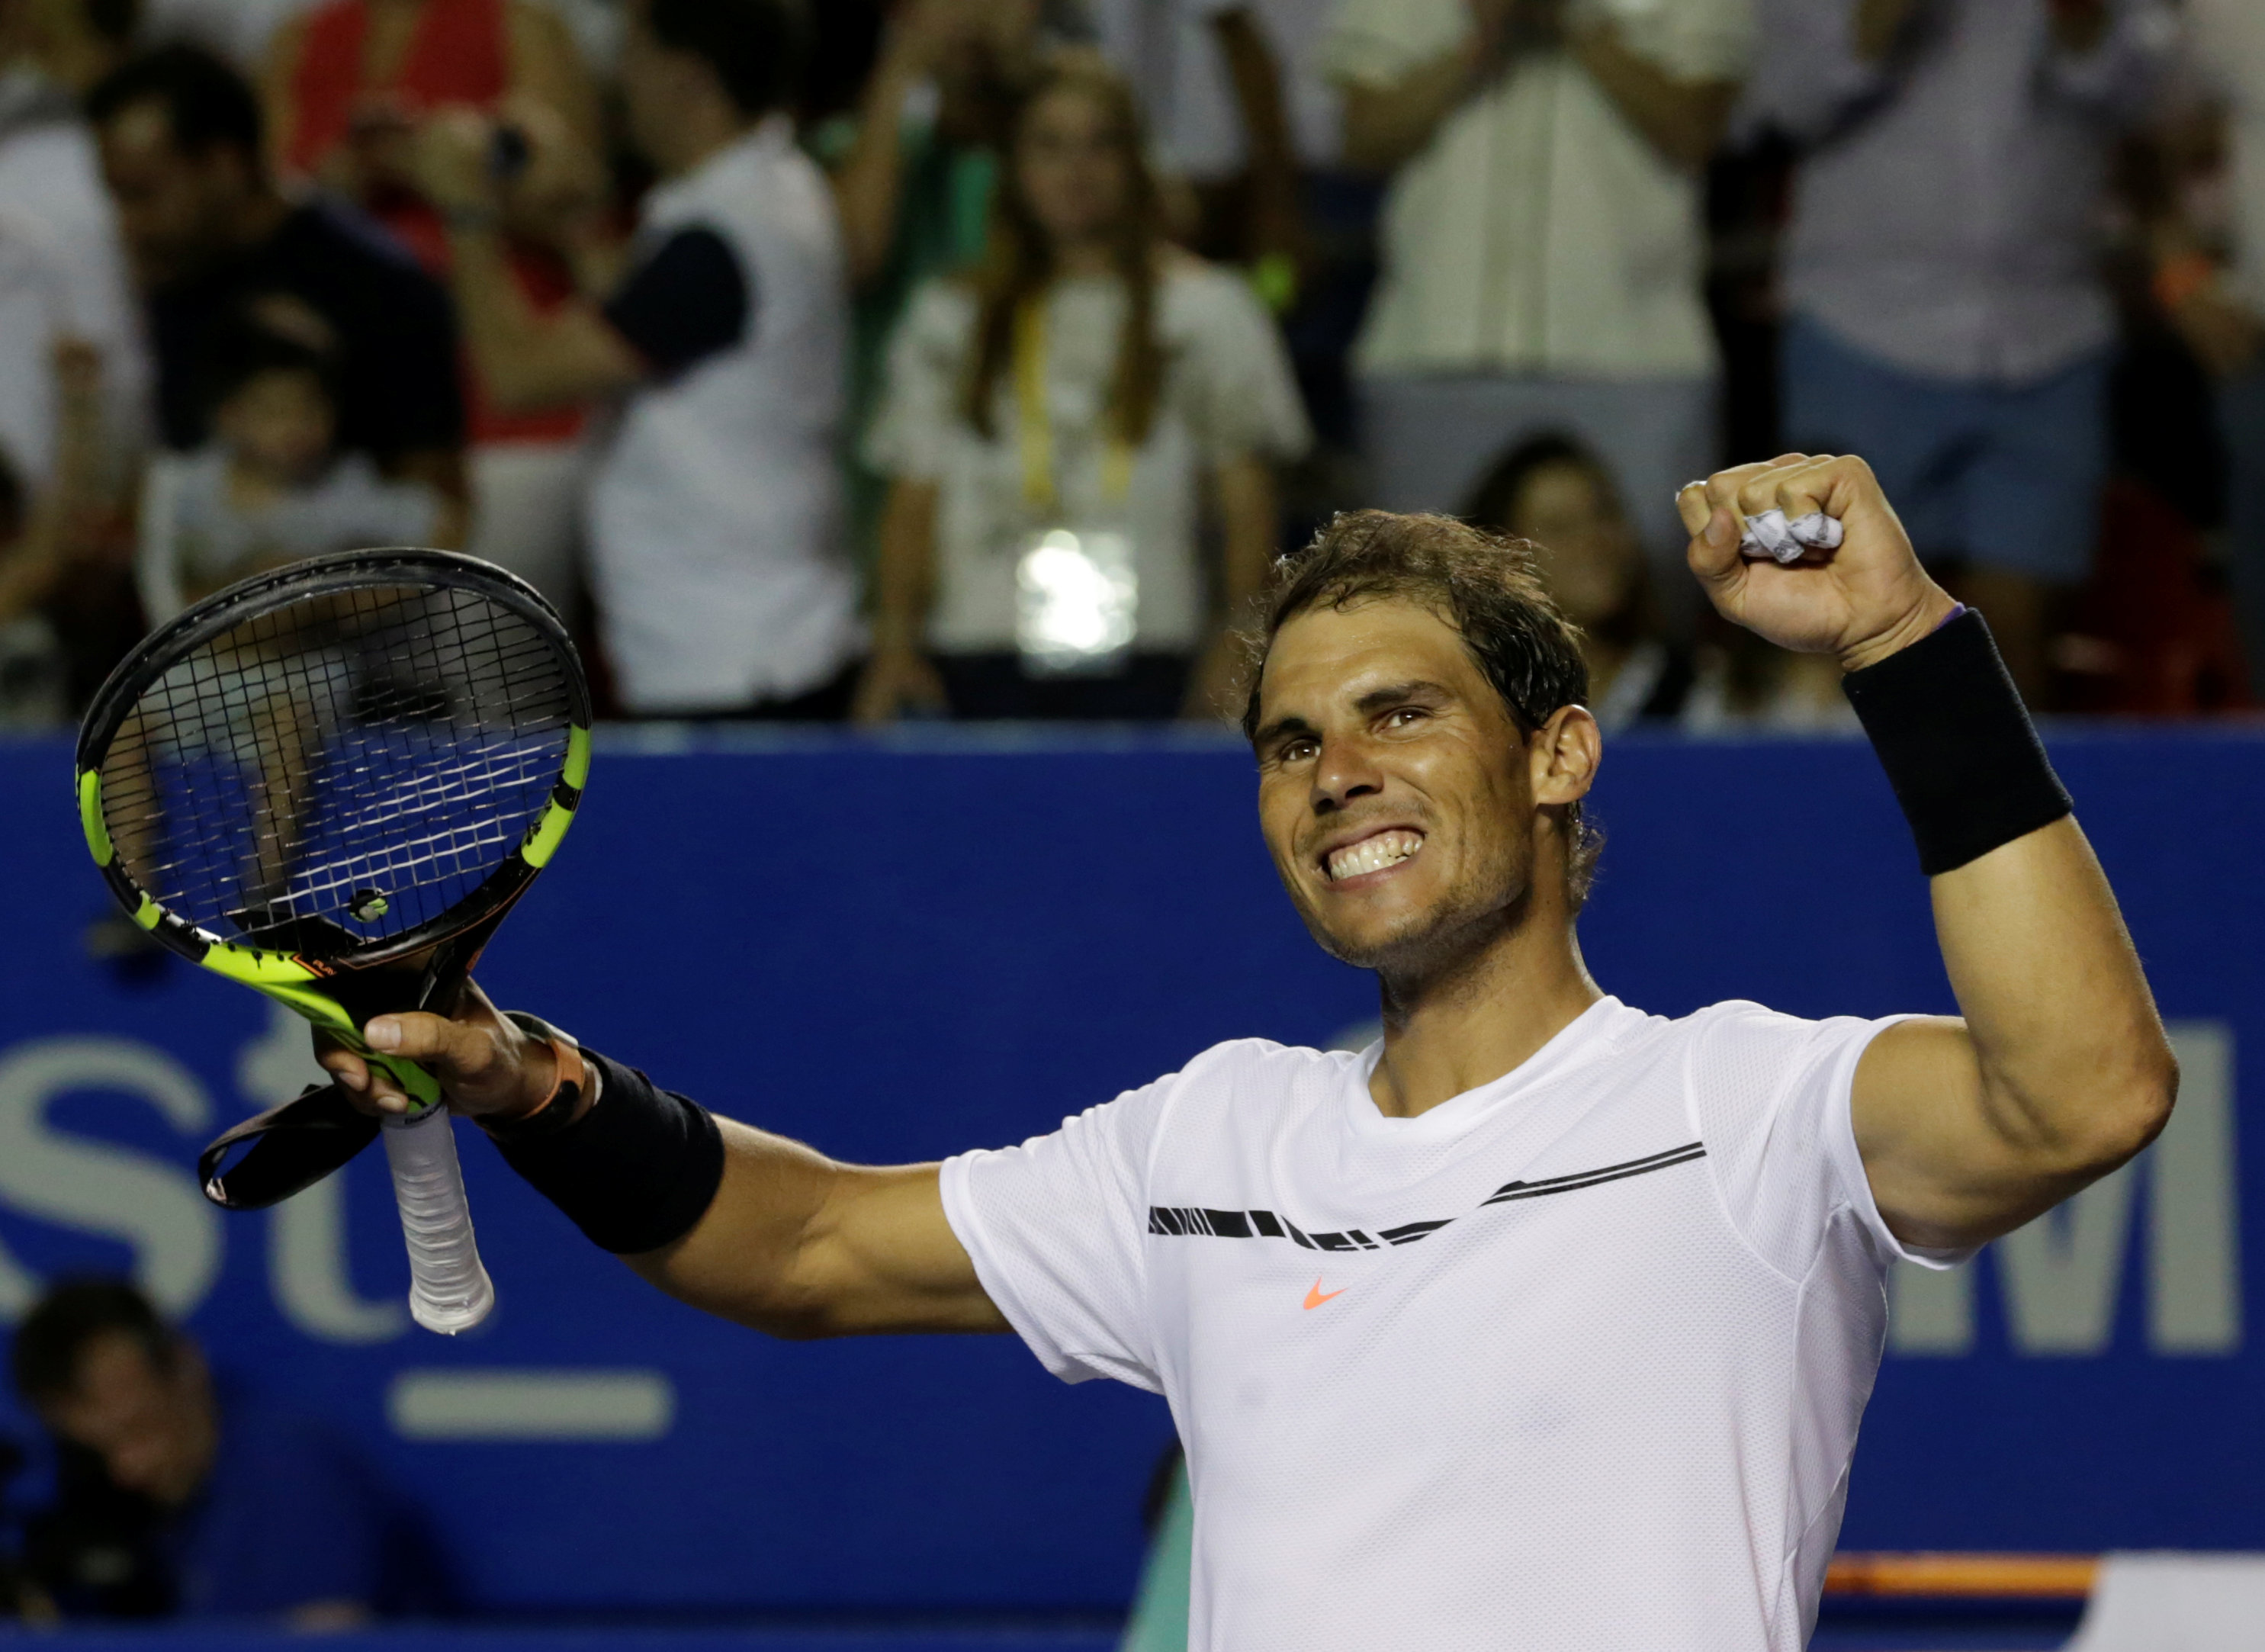 Nadal has failed to win hard court title since 2014. PHOTO: REUTERS